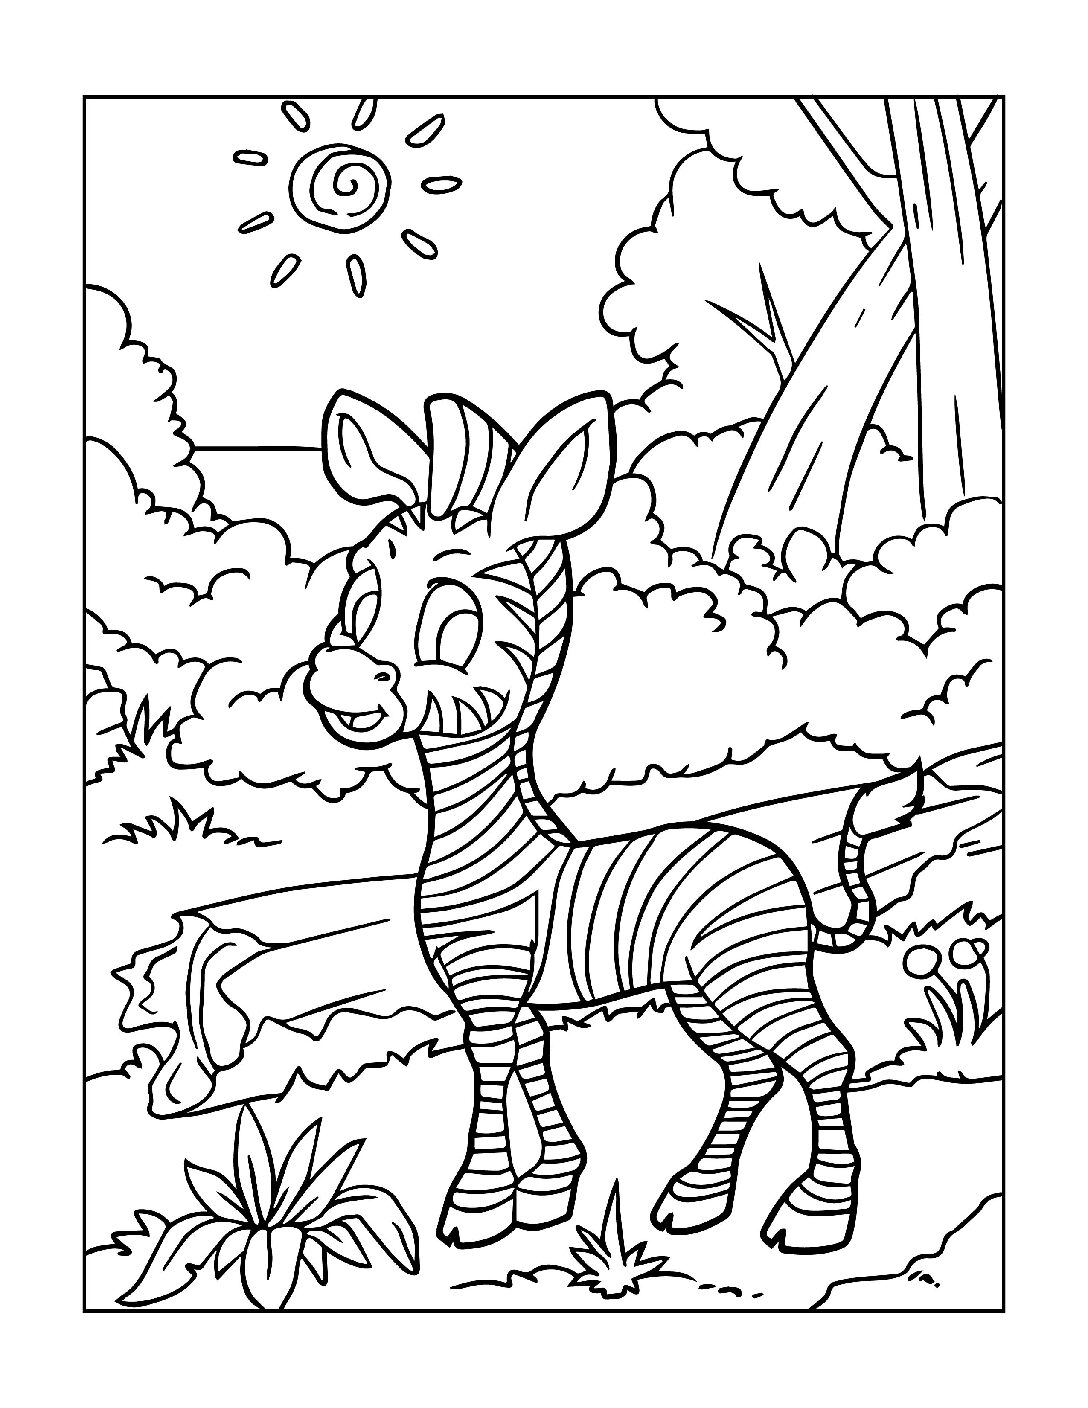 free printable zoo coloring pages 20 free printable zoo coloring pages everfreecoloringcom zoo coloring printable pages free